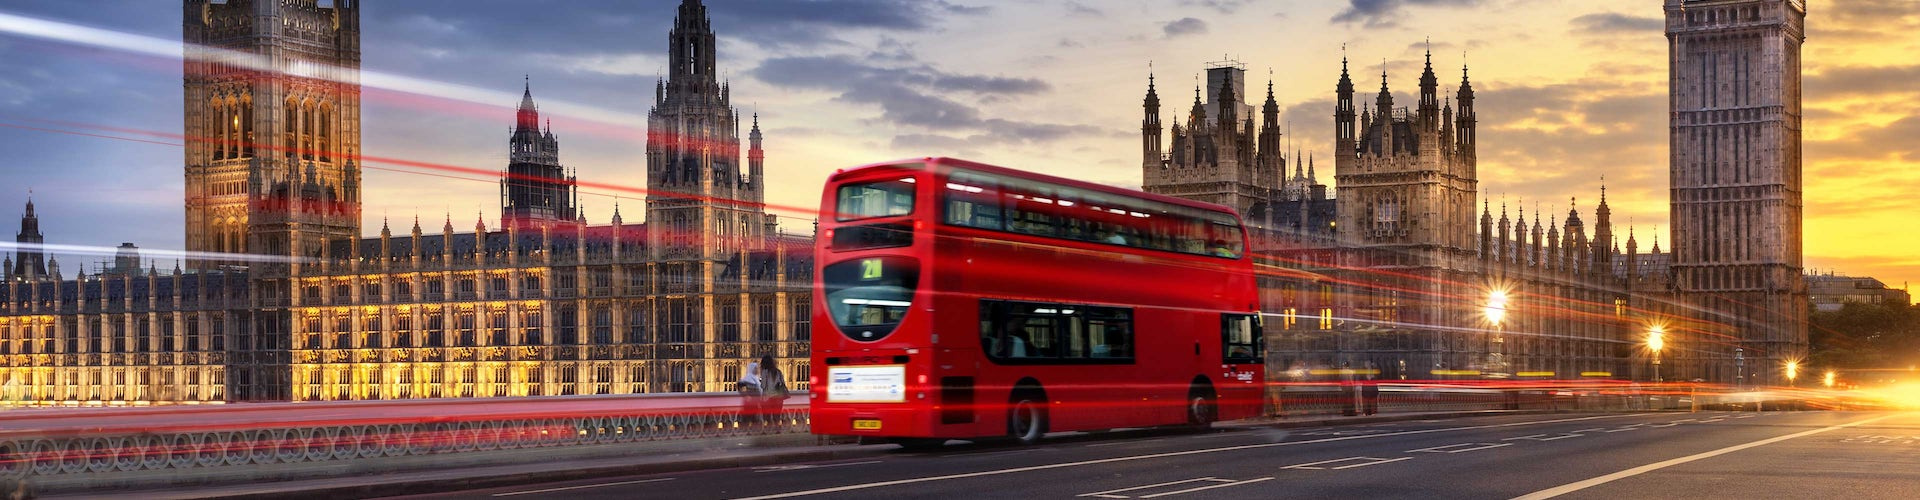 londres tours y excursiones